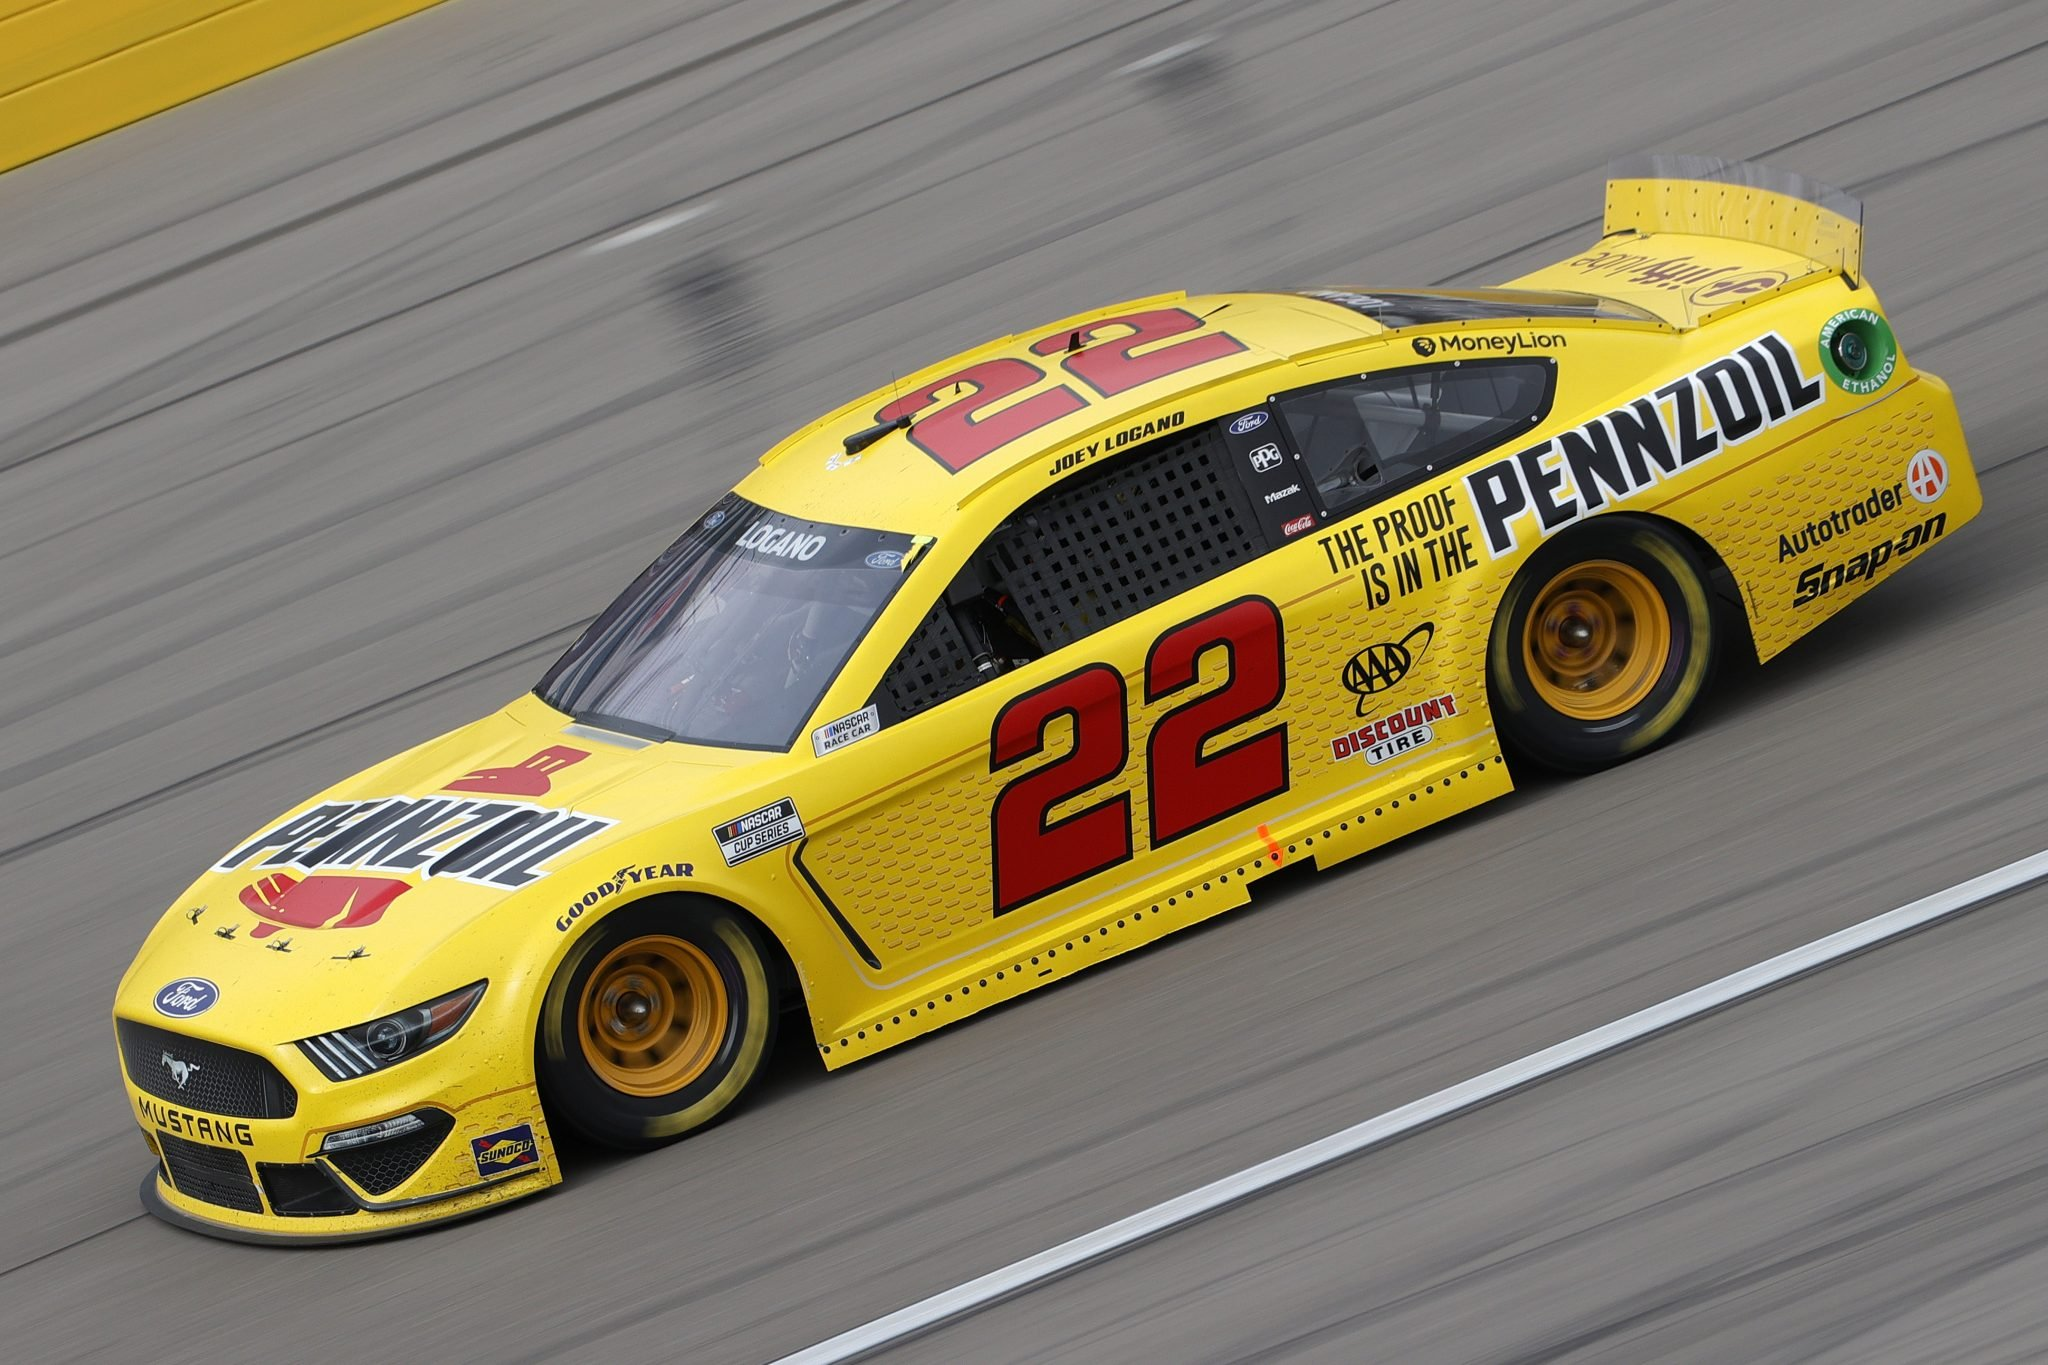 LAS VEGAS, NEVADA - MARCH 07: Joey Logano, driver of the #22 Pennzoil Ford, drives during the NASCAR Cup Series Pennzoil 400 presented by Jiffy Lube at the Las Vegas Motor Speedway on March 07, 2021 in Las Vegas, Nevada. (Photo by Chris Graythen/Getty Images) | Getty Images